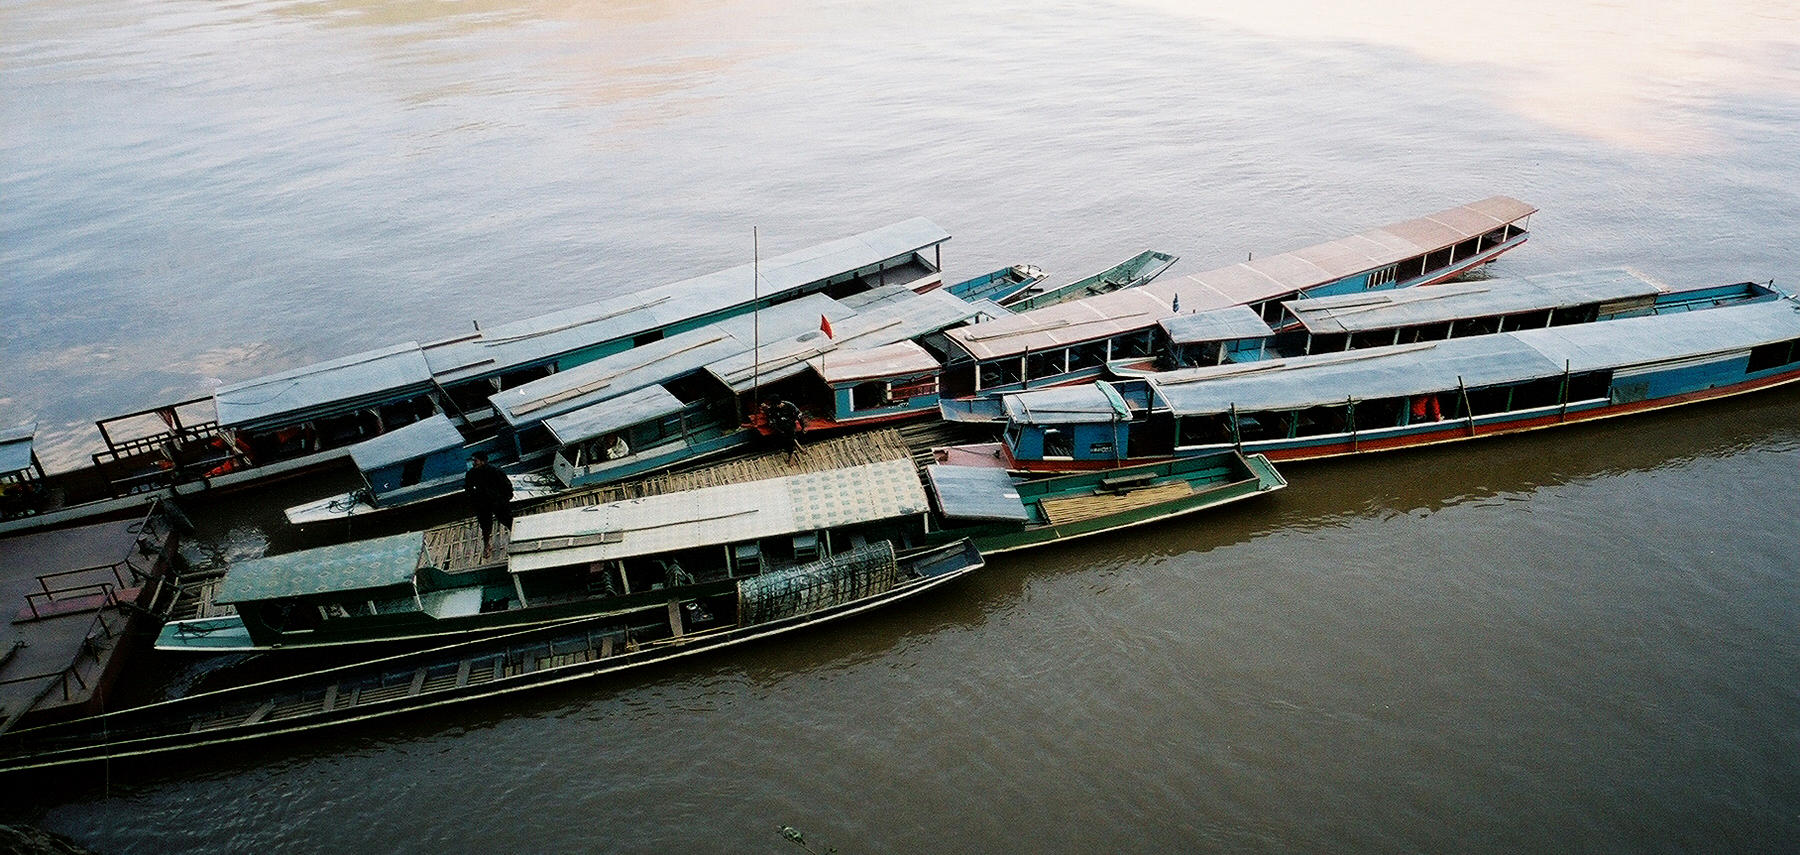 Copy of Laos_boats.jpg